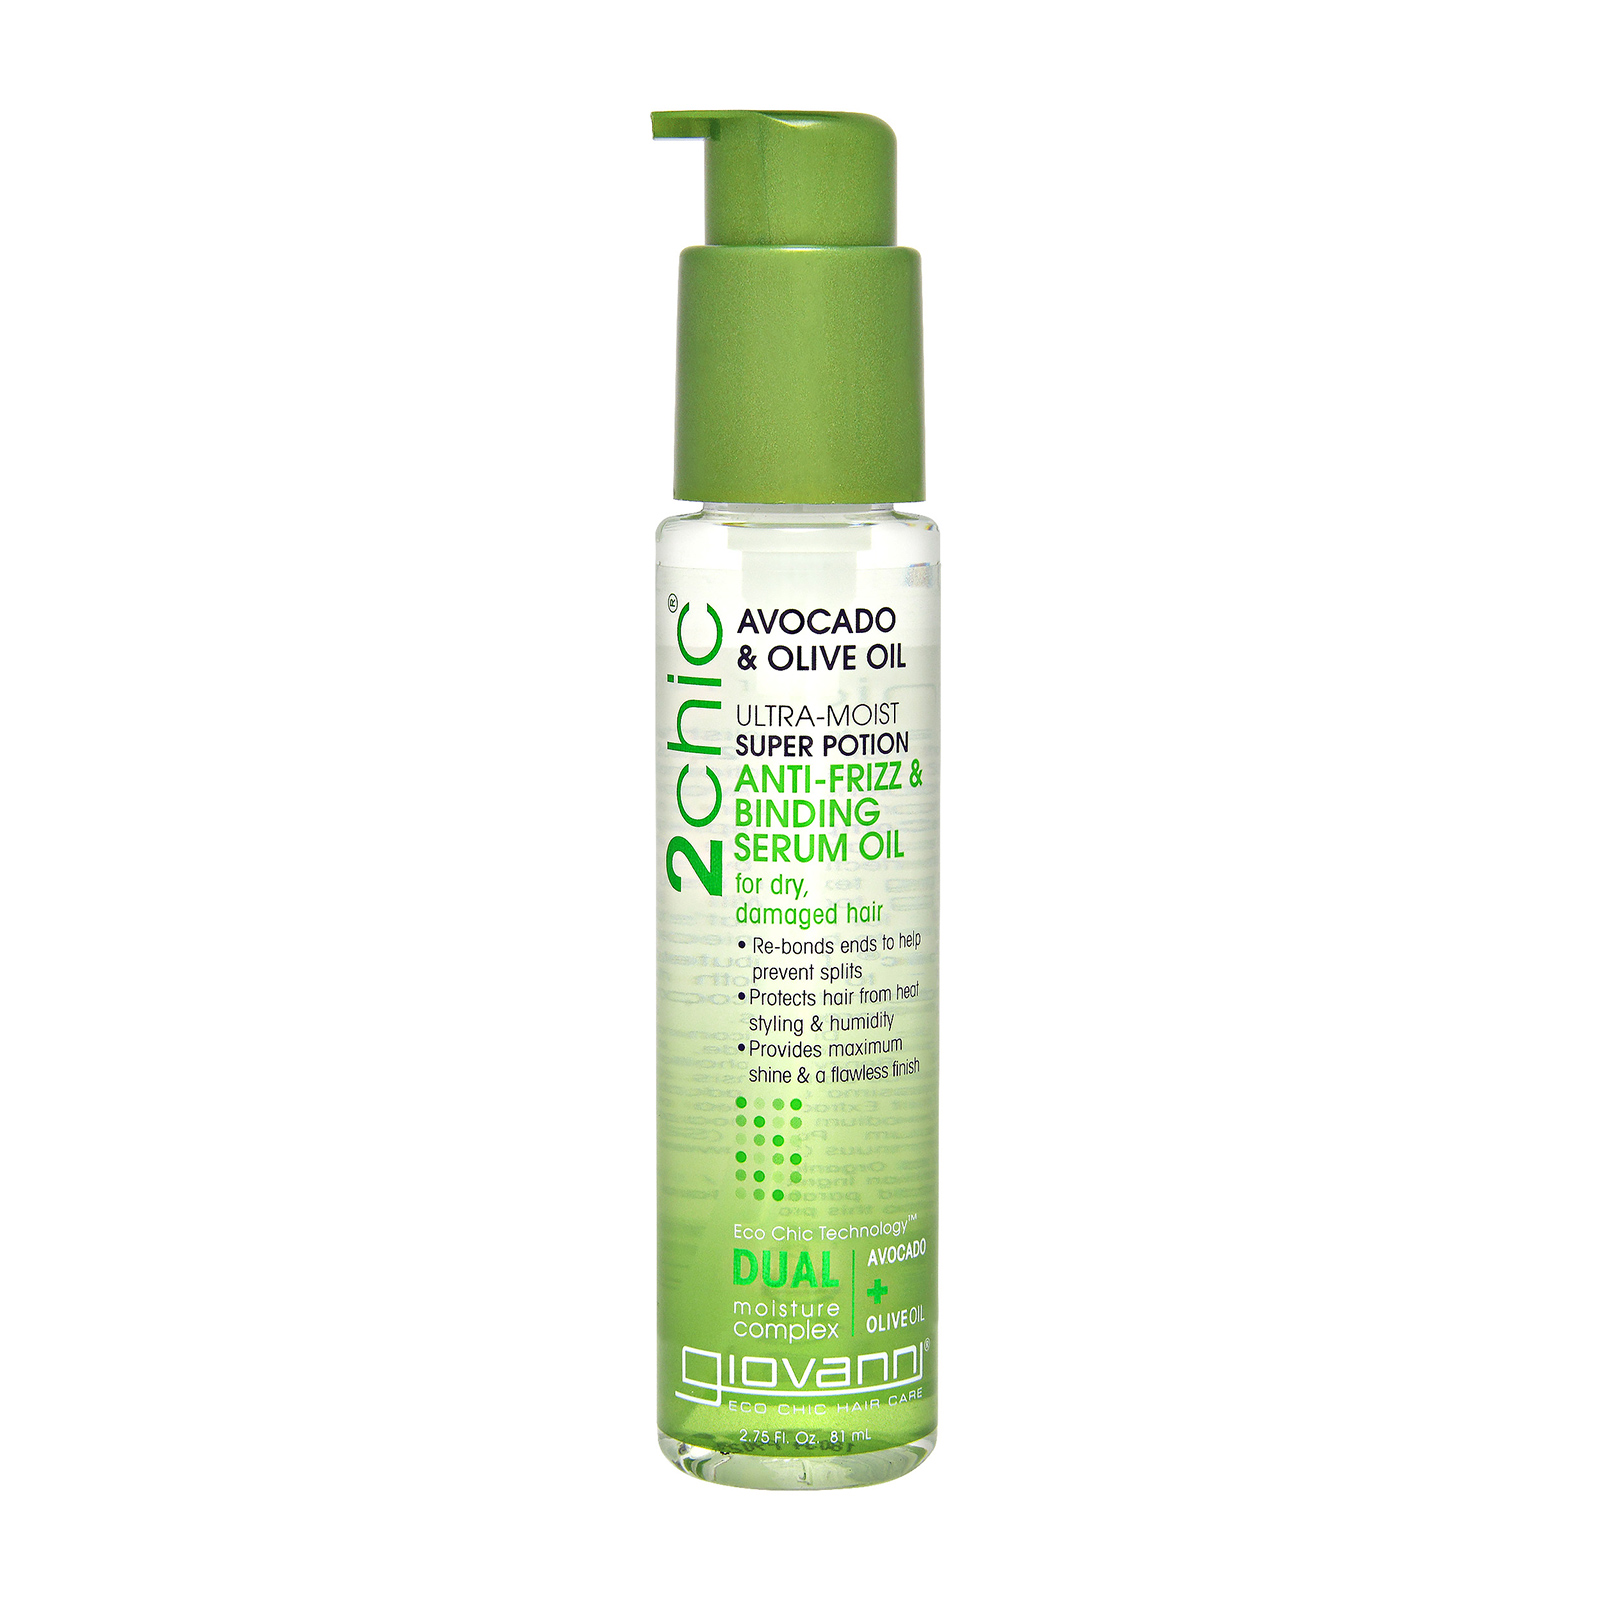 Giovanni 2chic Ultra-Moist Avocado & Olive Oil Super Potion Anti-Frizz Binding Serum (For Dry And Damaged Hair) 1.8oz, 53ml